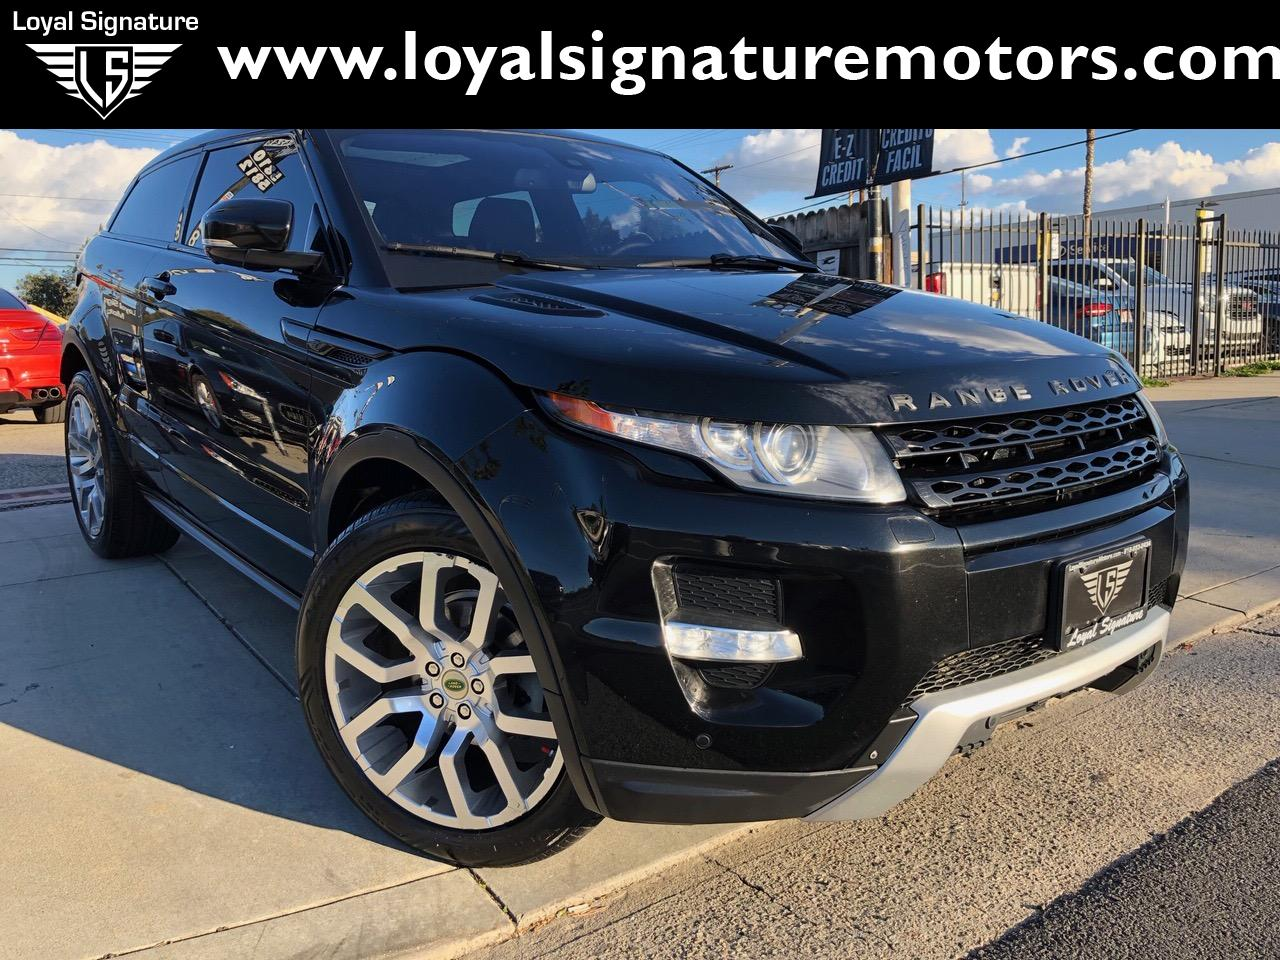 Used 2012 Land Rover Range Rover Evoque Coupe Dynamic | Van Nuys, CA